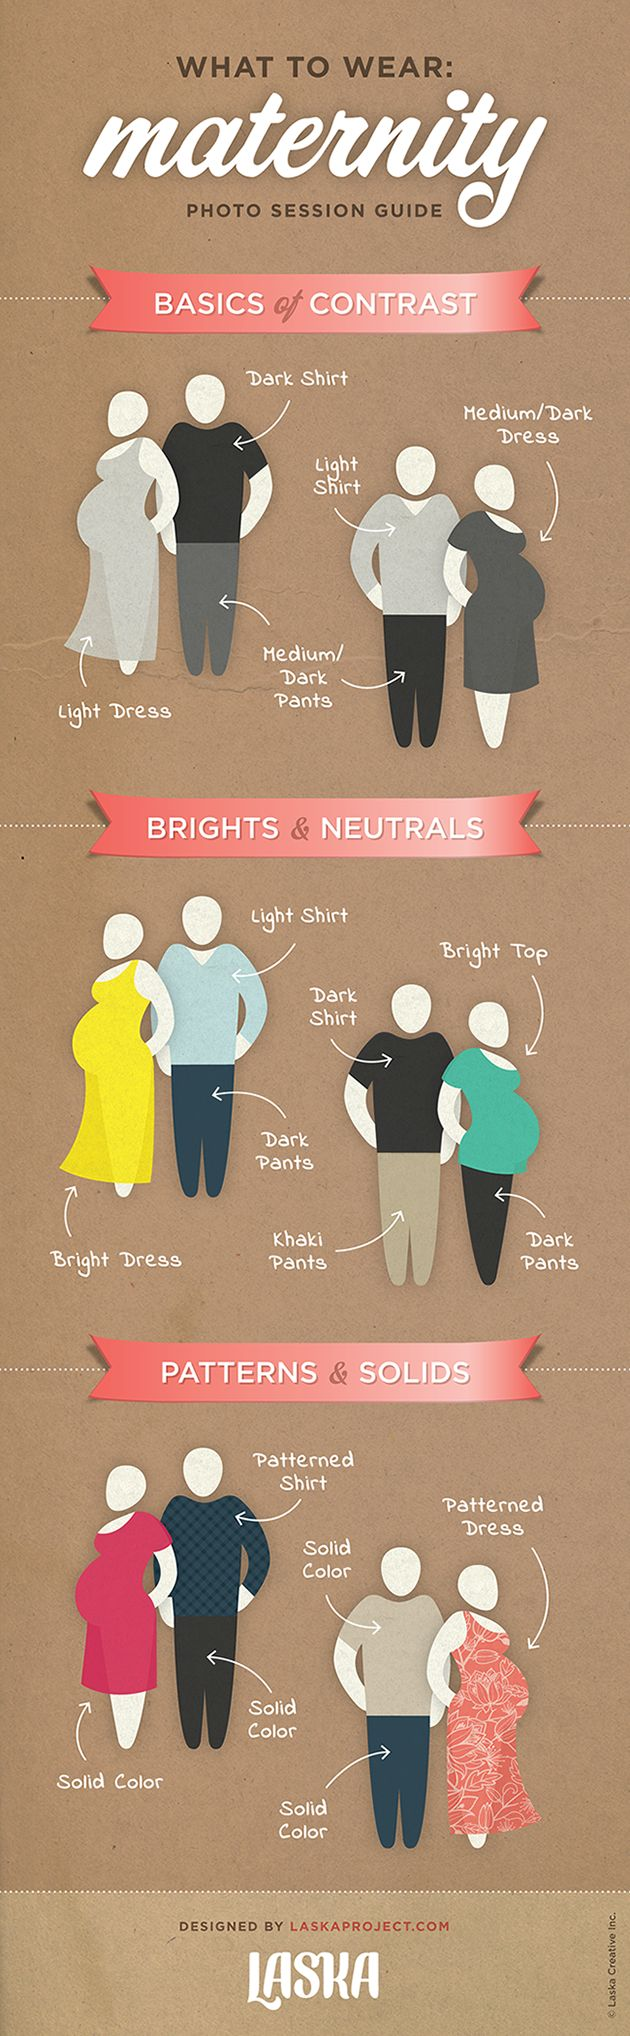 What to Wear to a Maternity Photo Session. Designed by laskaproject.com #maternity #fashion #momy #couple #photoshoot #photography #howto #guide #outfit #infographic #illustration #pregnancy #clothes #pairing #laska #laskaproject #100repins #200repins